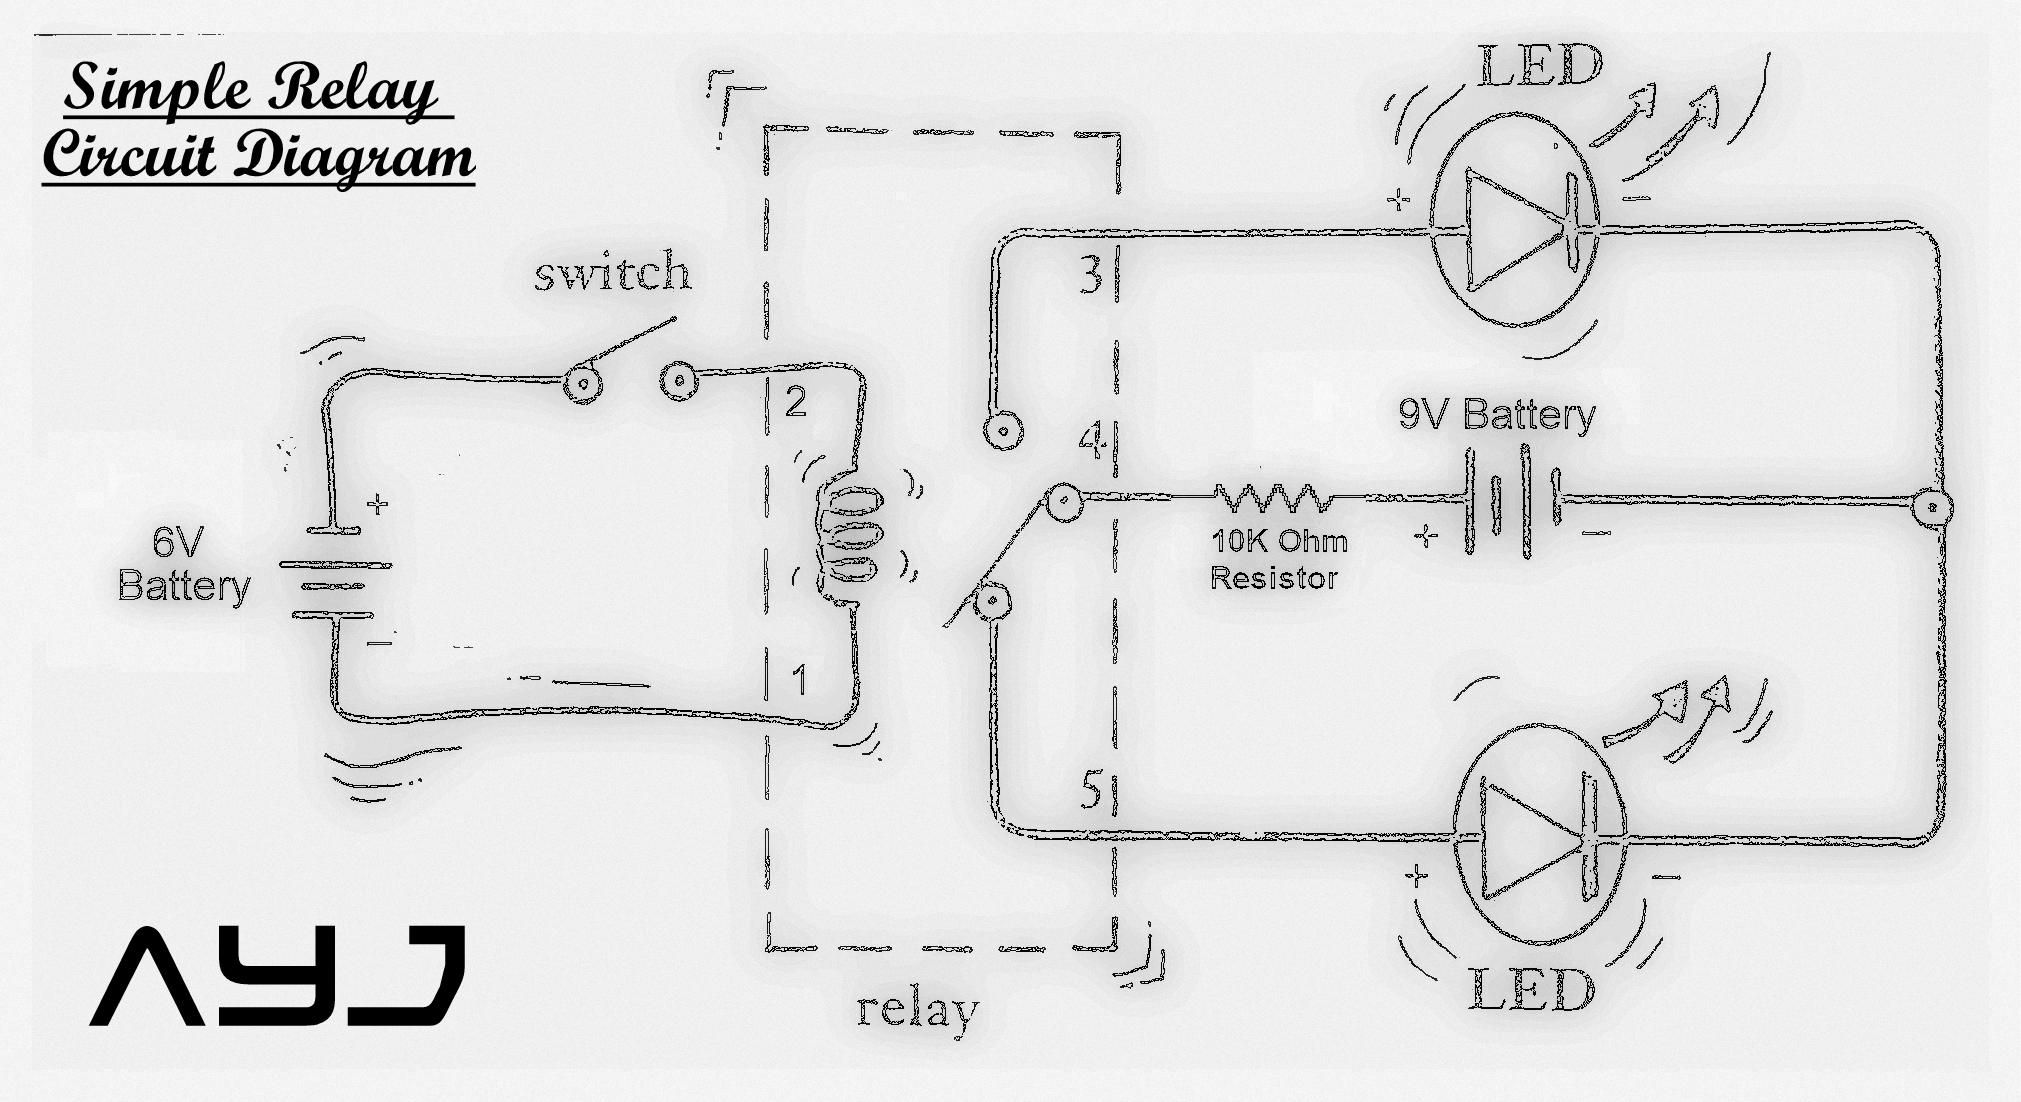 medium resolution of simple relay circuit circuit diagram electronics and electrical simple relay circuit circuit diagram